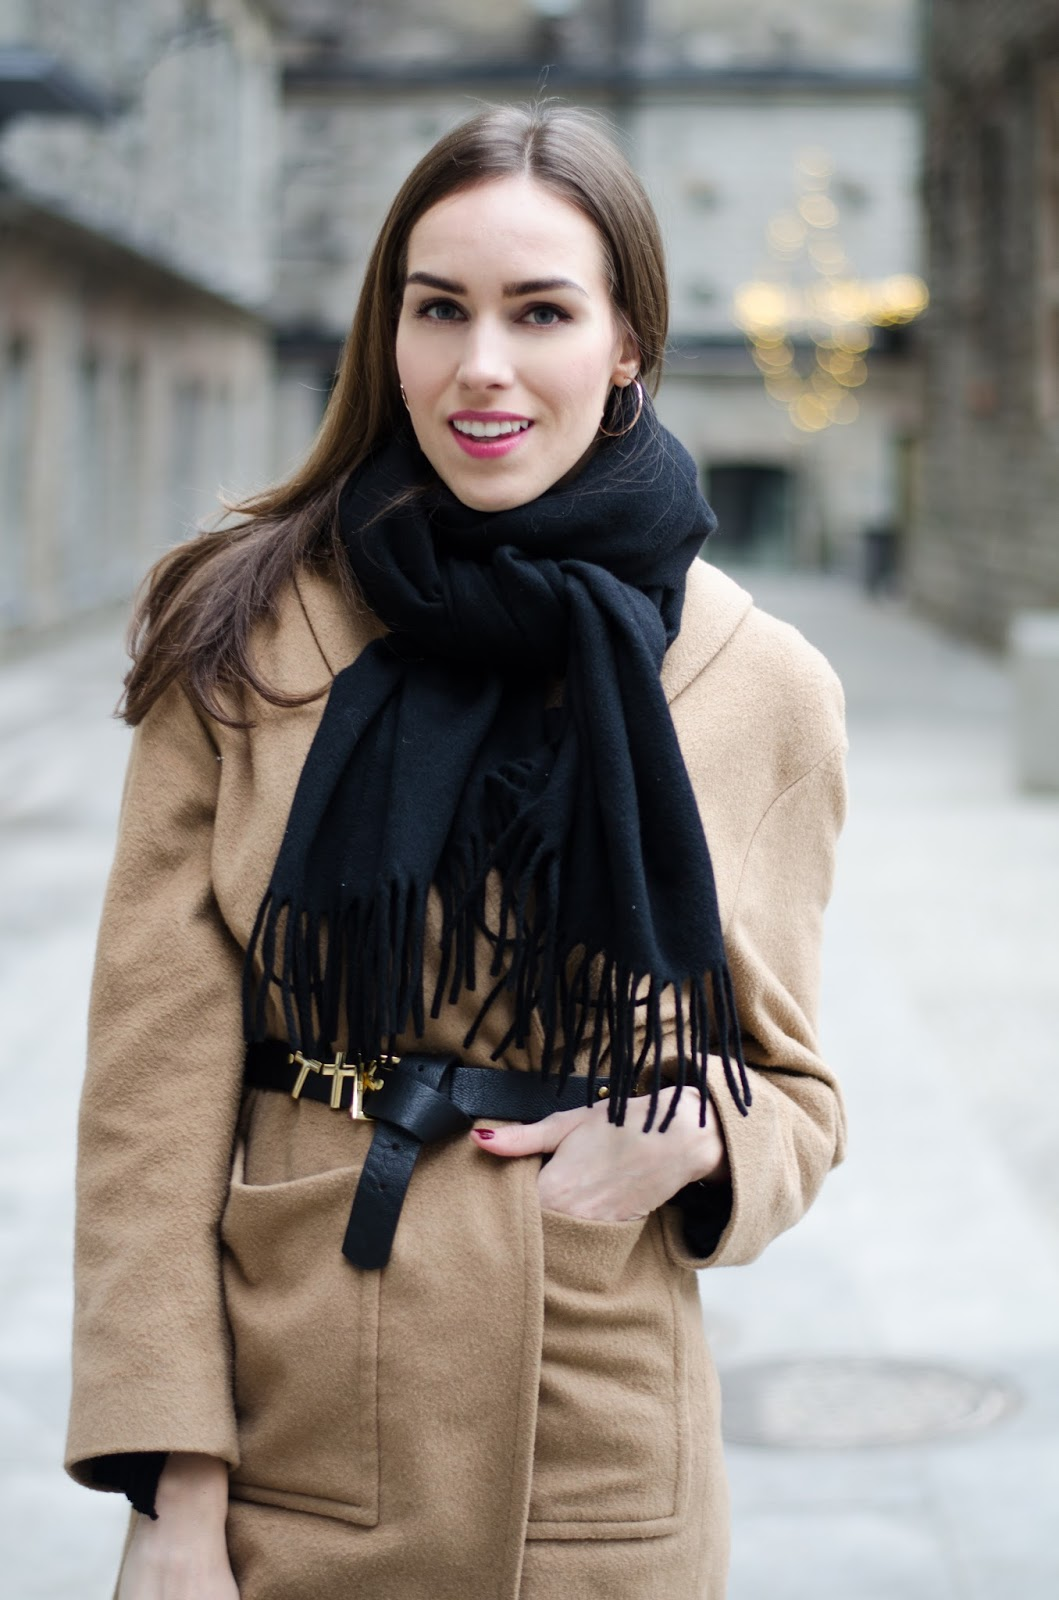 kristjaana mere black acne scarf outfit